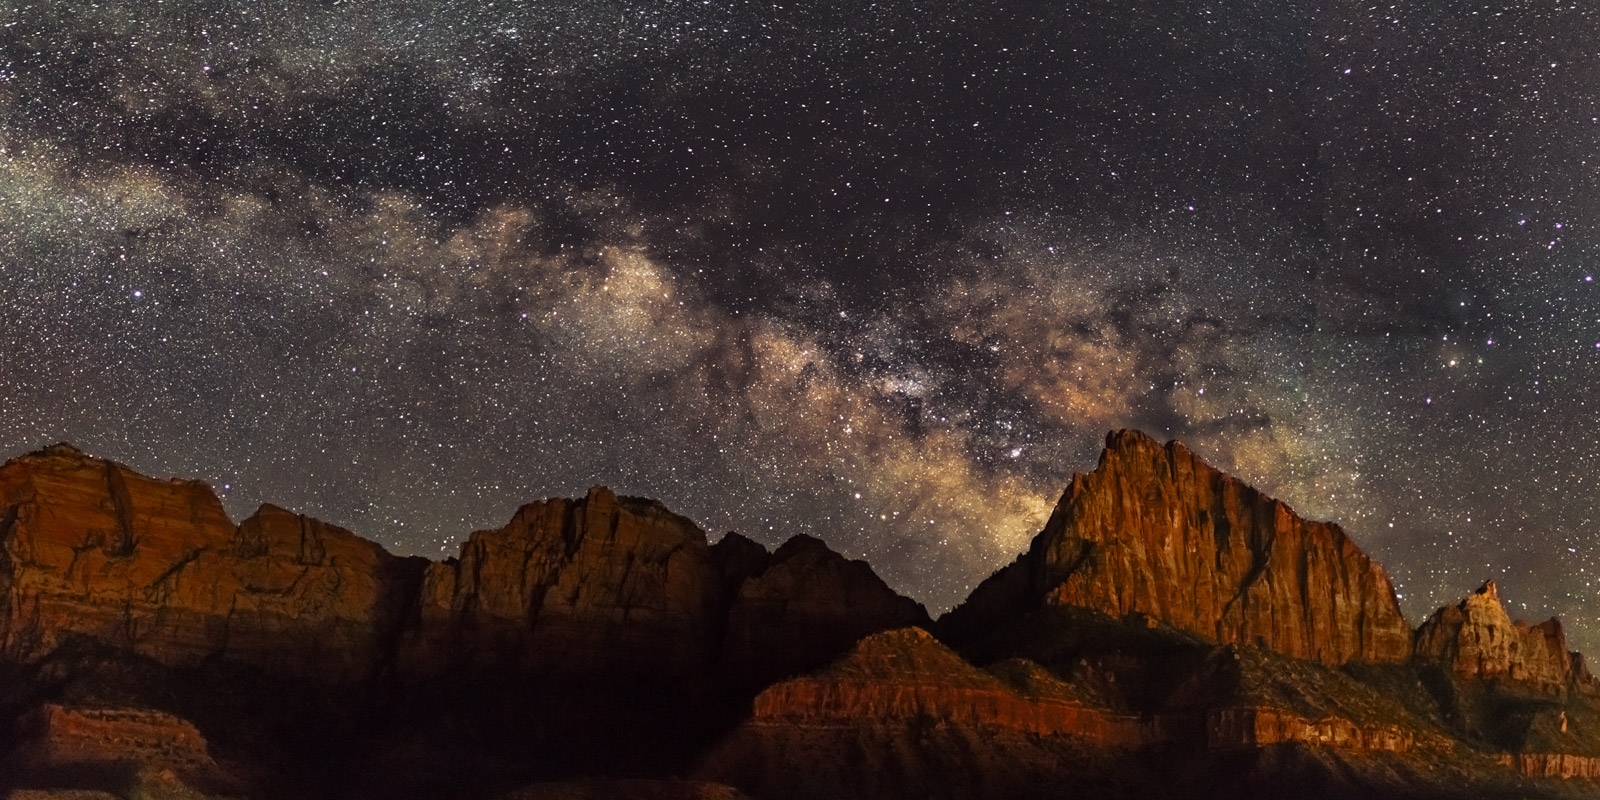 Utah, Milky Way, Zion National Park, The Watchman, photo